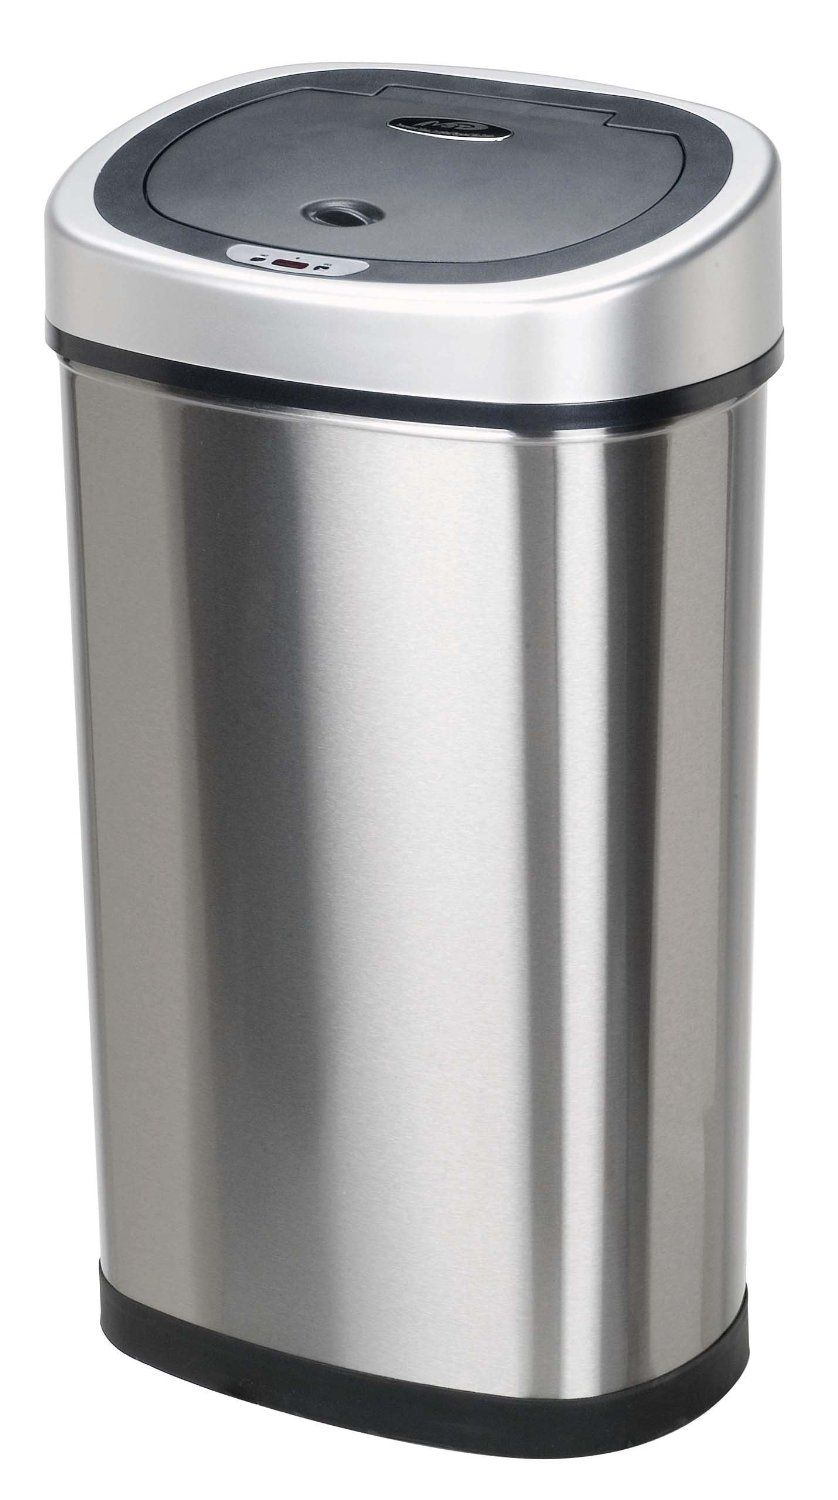 Nine Stars Infrared Touchless Stainless Steel Trash Can - $34.46 ...